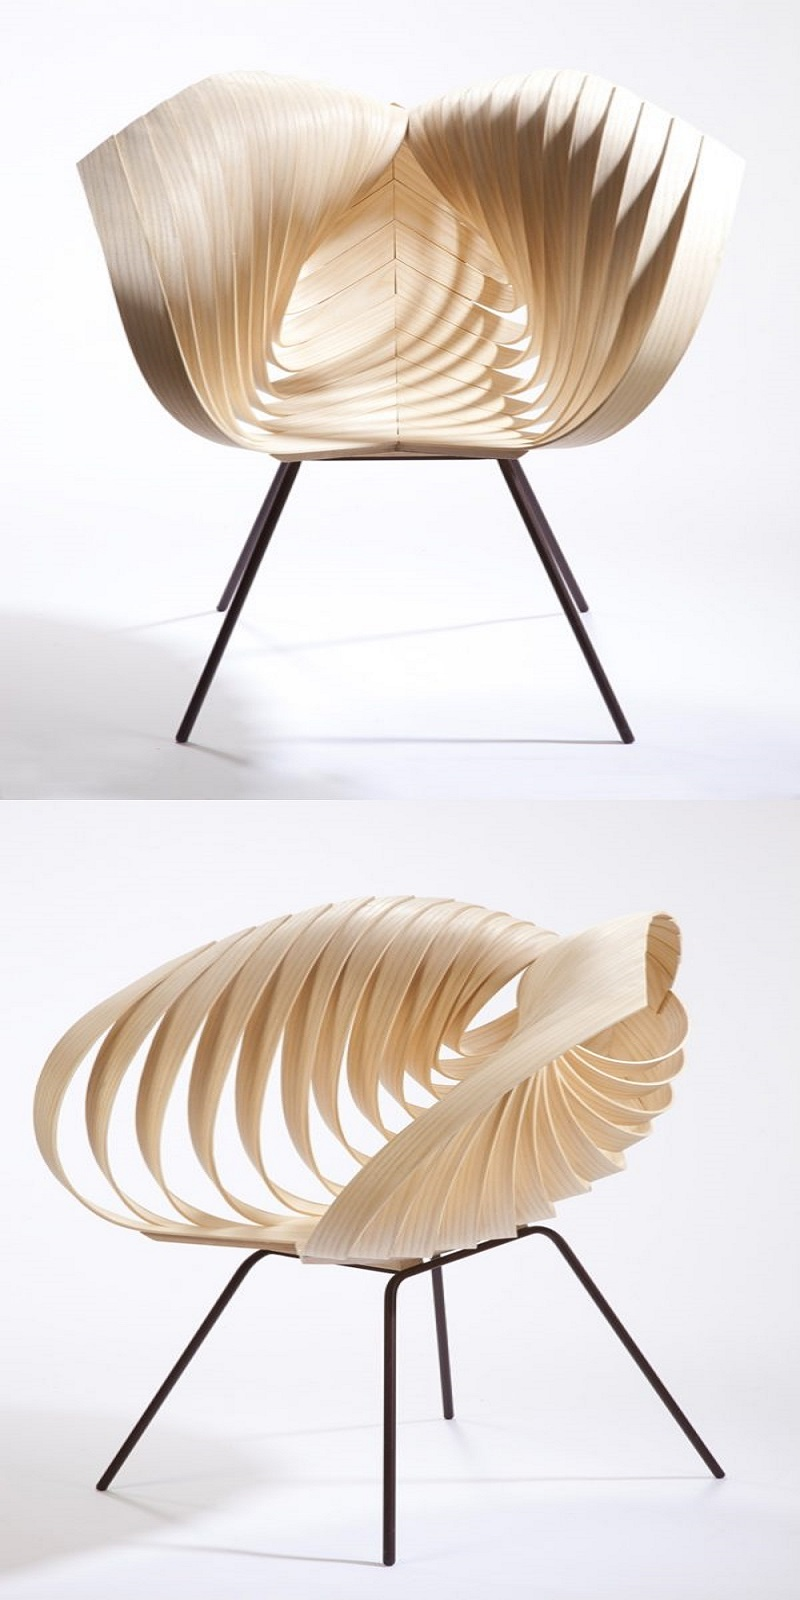 Yumi chair The Most Artistic Sculptural Chairs To Add An Exhibition Touch In Your Home